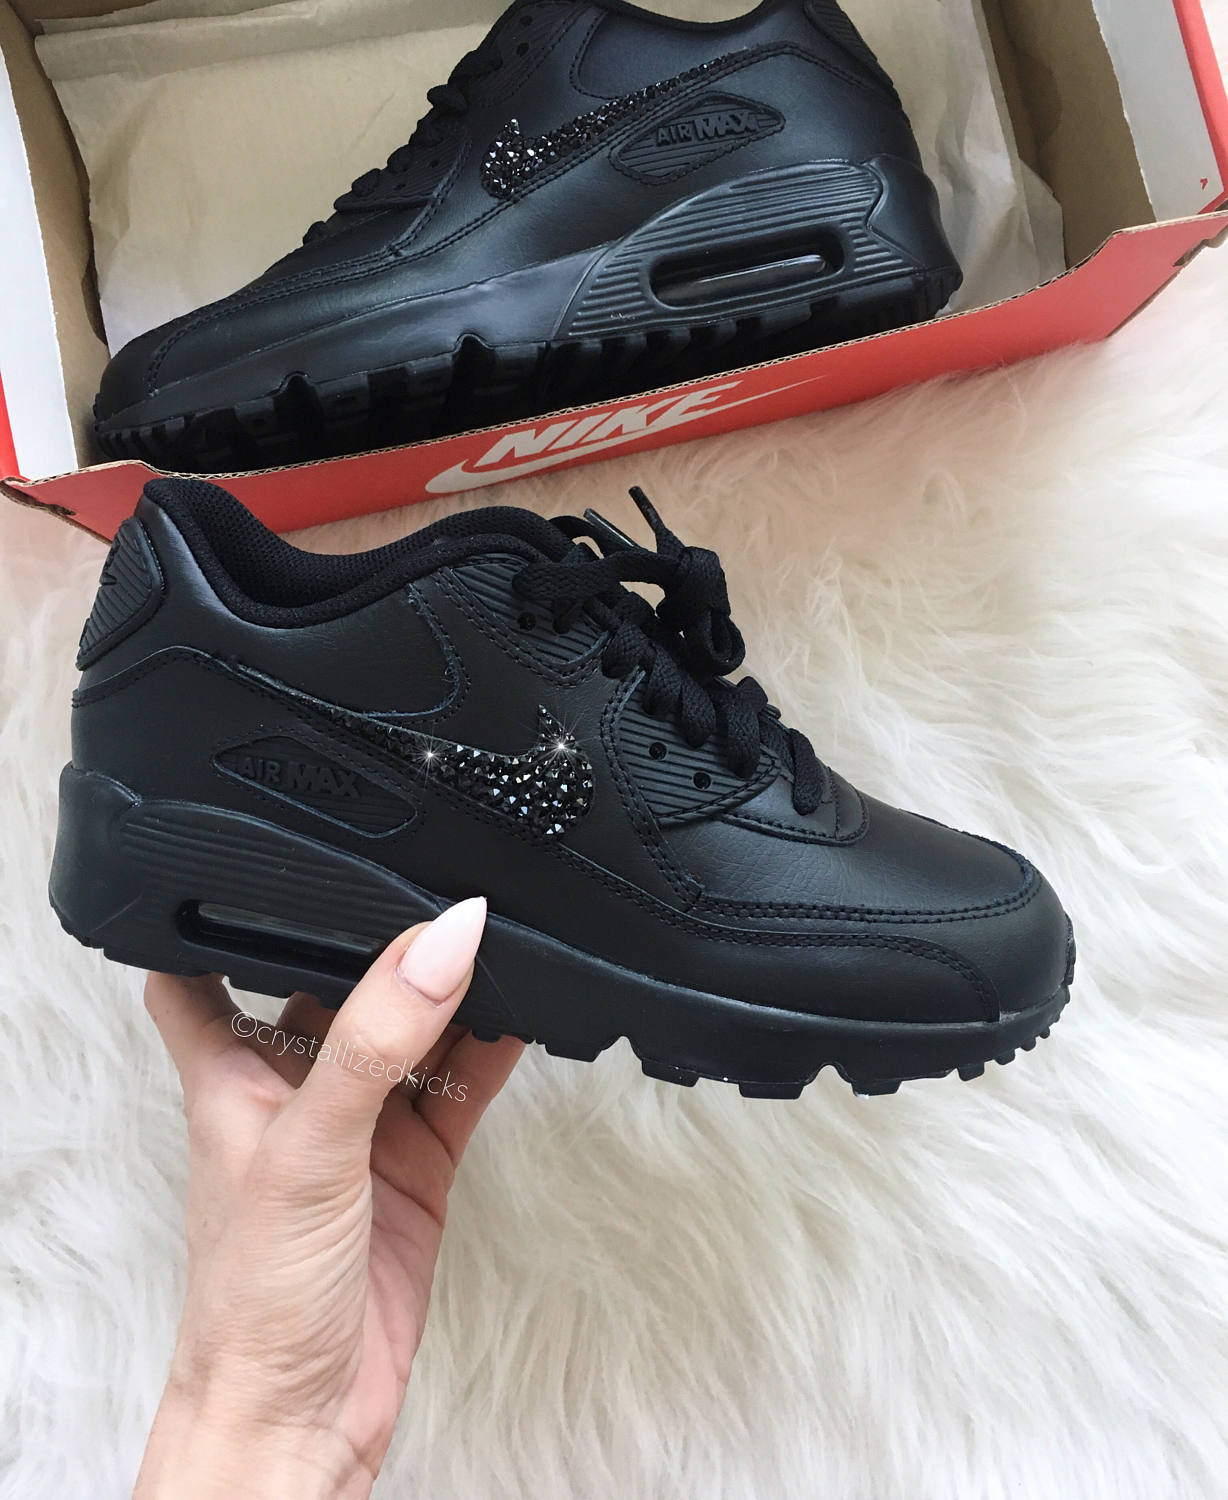 Nike Air Max 90 Womens Youth Black Sneakers Made with SWAROVSKI® Crystals blackblack | Leather